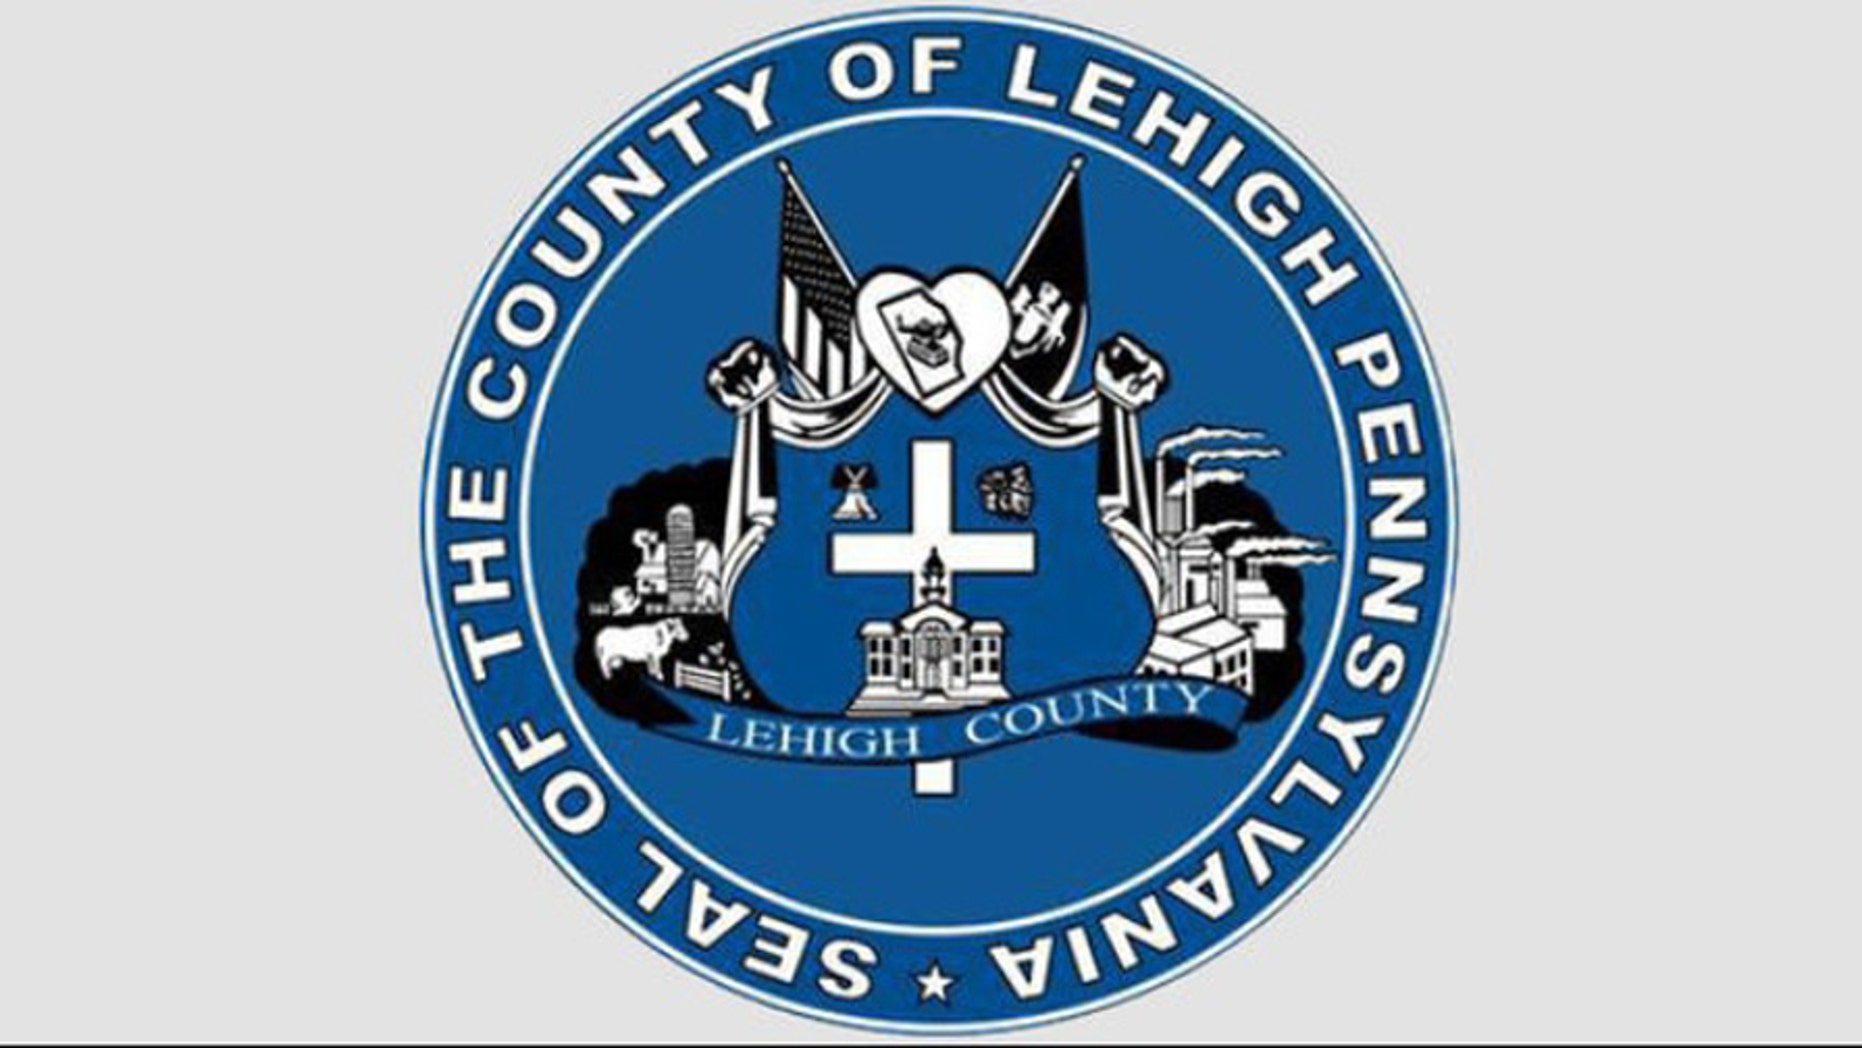 Lehigh County officials in Pennsylvania will have to scrap this seal after a court ruled that it that it did not adhere to the consitution.